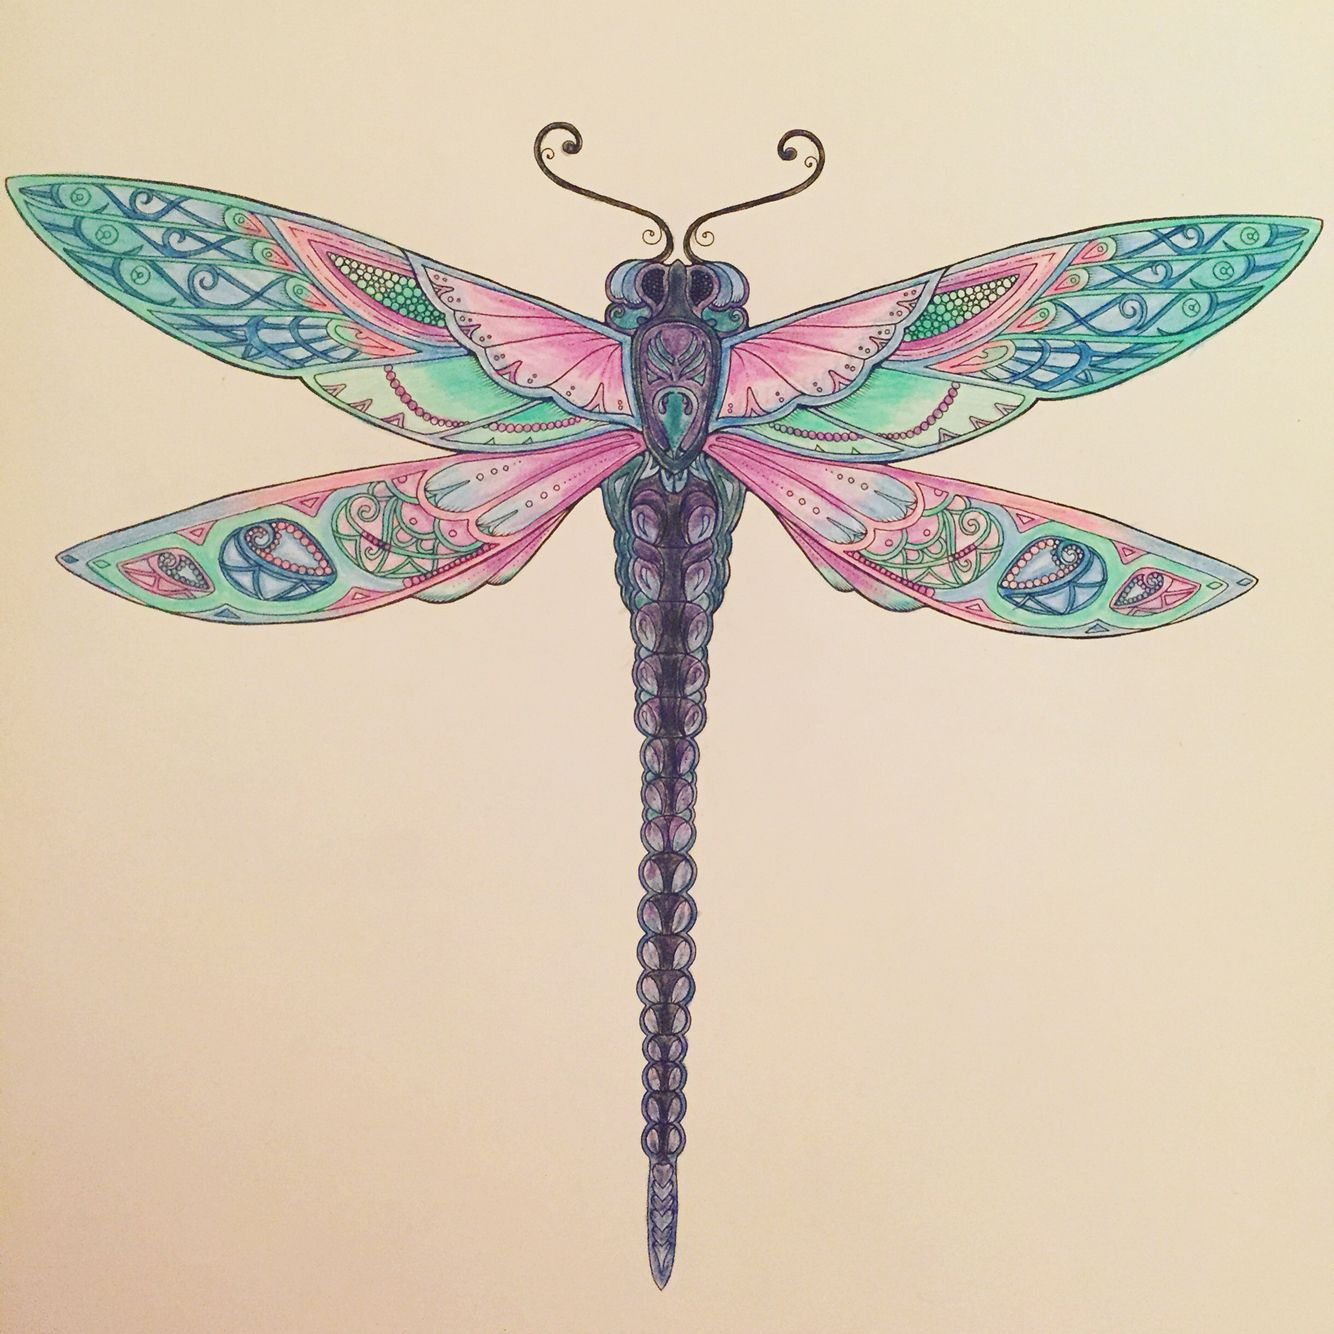 Enchanted forest colouring dragonfly Johanna Basford